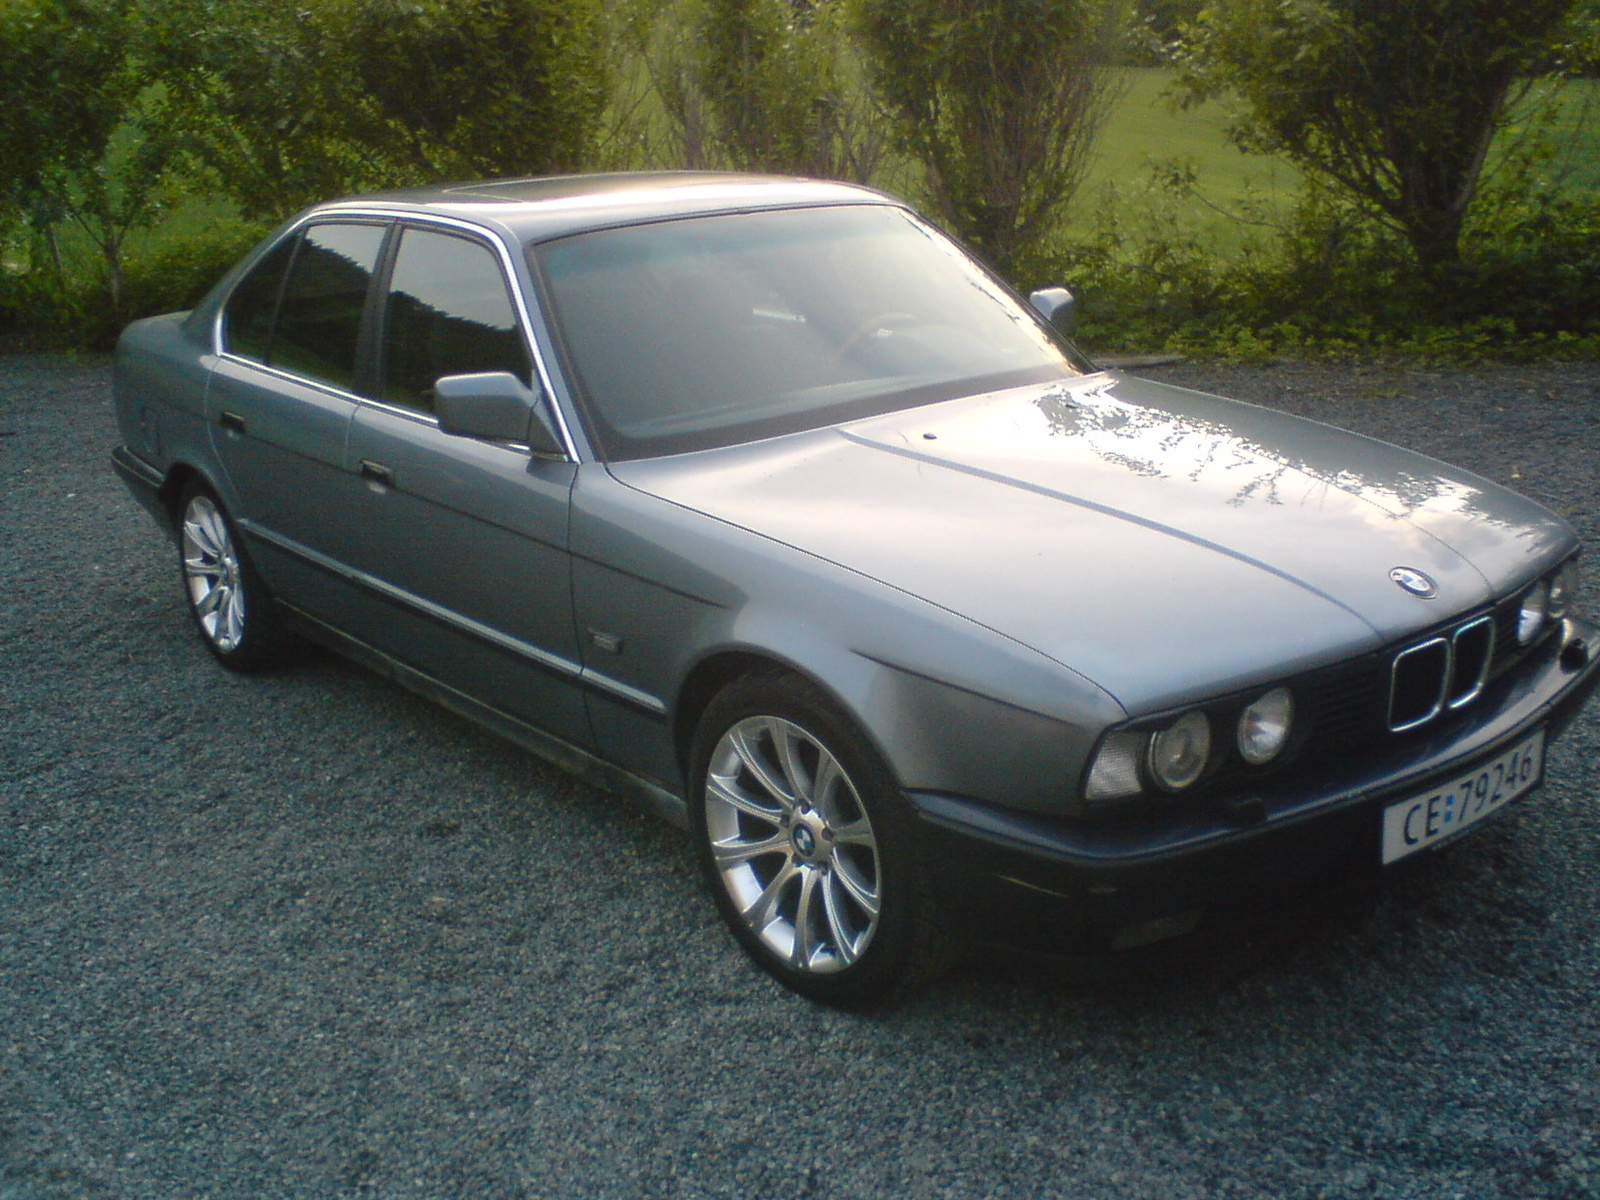 1991 Bmw 5 Series - Pictures